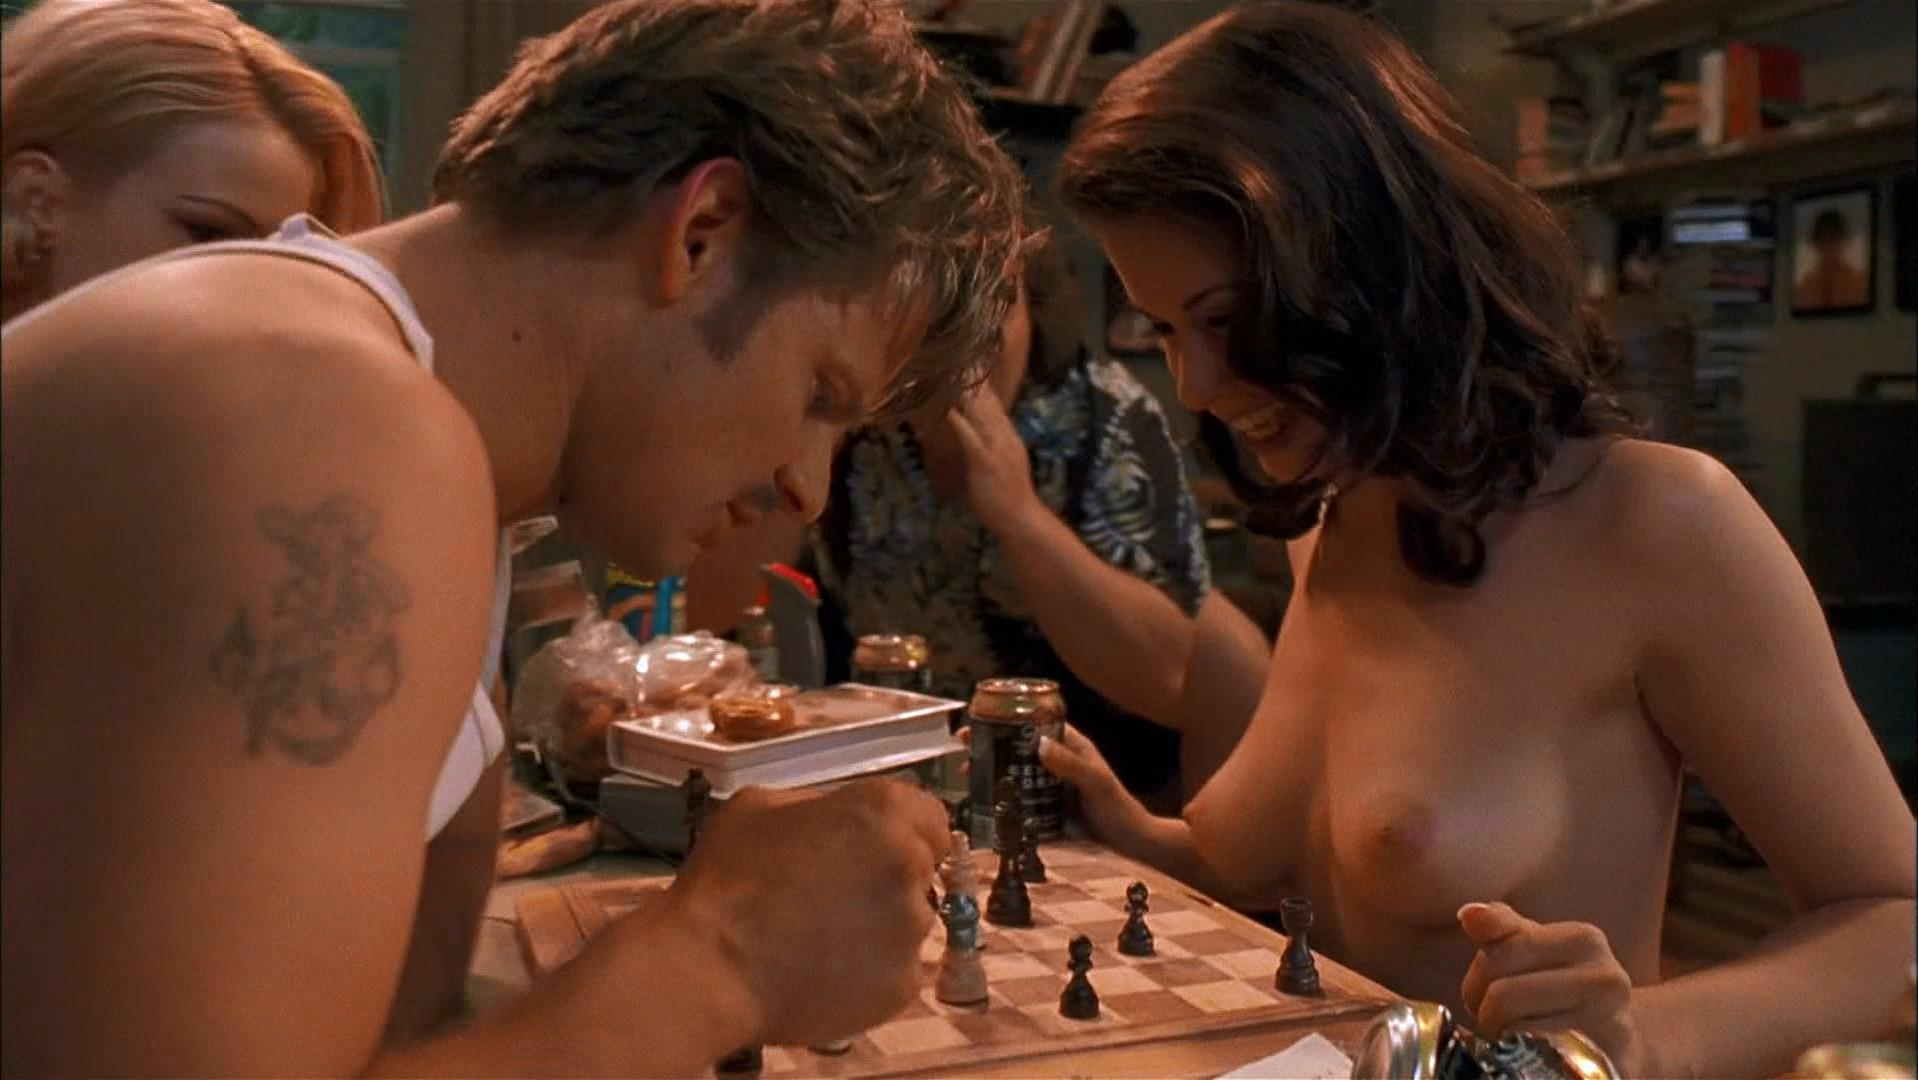 american-virgin-movie-naked-scene-x-rated-erotic-movies